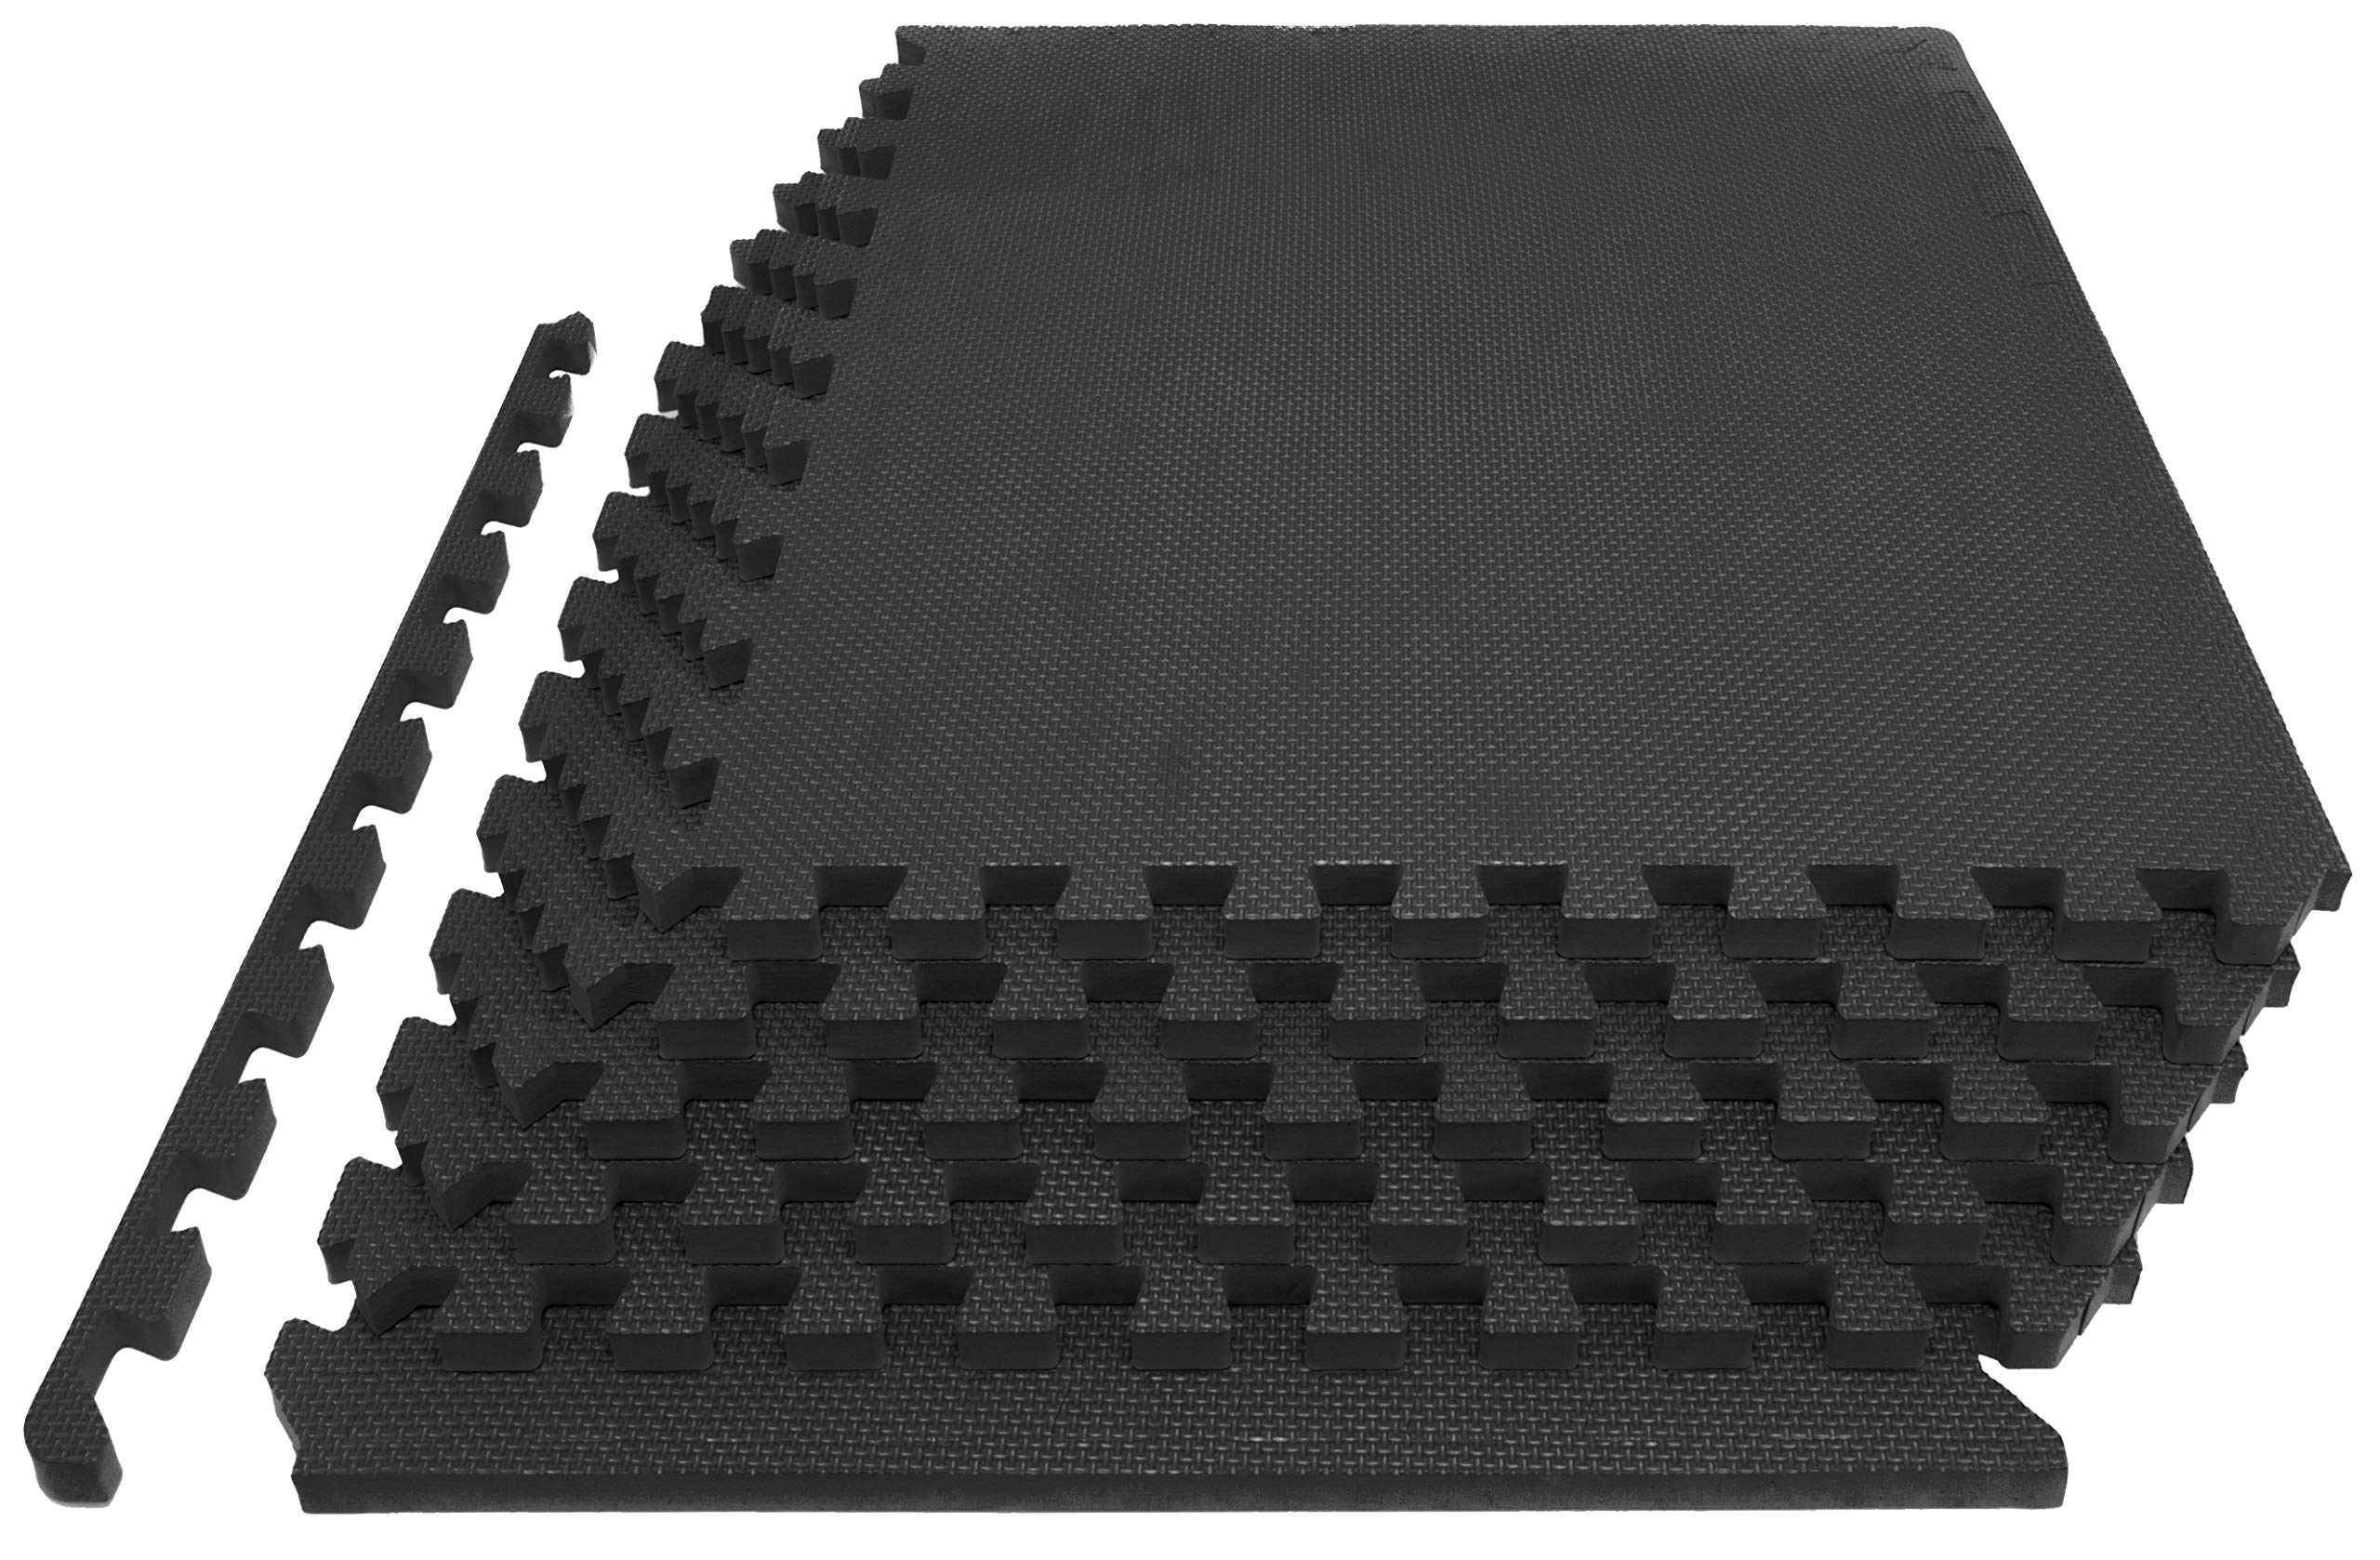 Prosource Fit Extra Thick Puzzle Exercise Mat 1'', EVA Foam Interlocking Tiles for Protective, Cushioned Workout Flooring for Home and Gym Equipment, Black